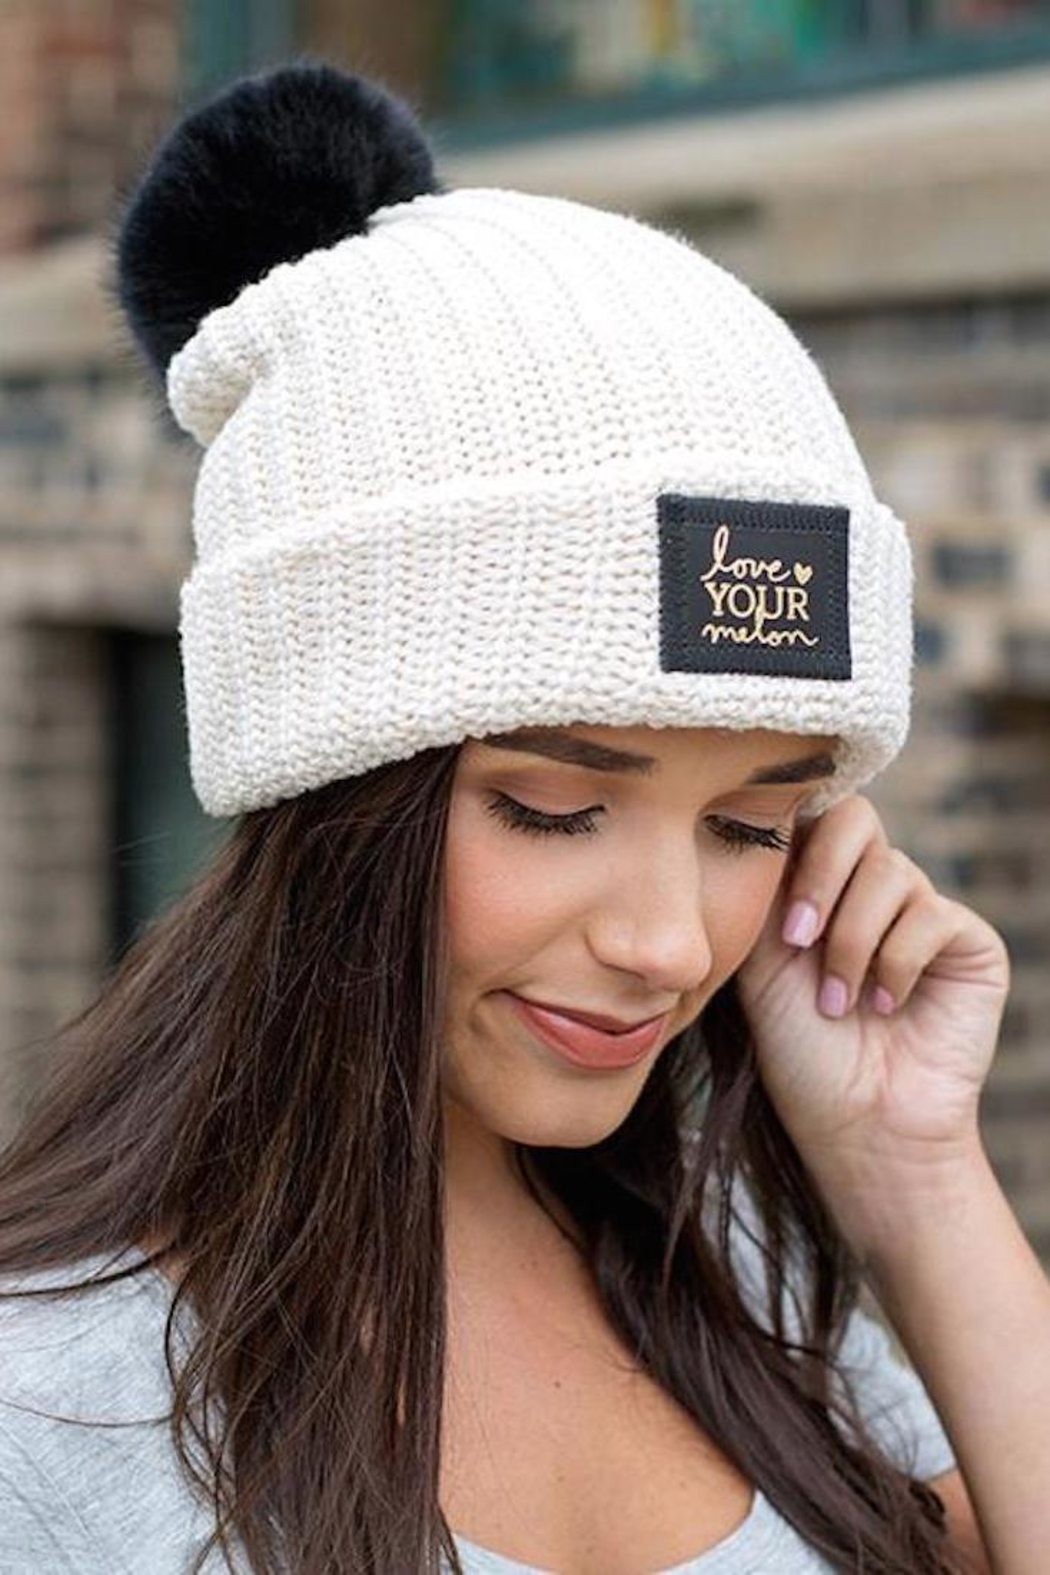 ff21ef6bddf47 Love Your Melon Natural Foil Pom from New Jersey by Barefoot ...